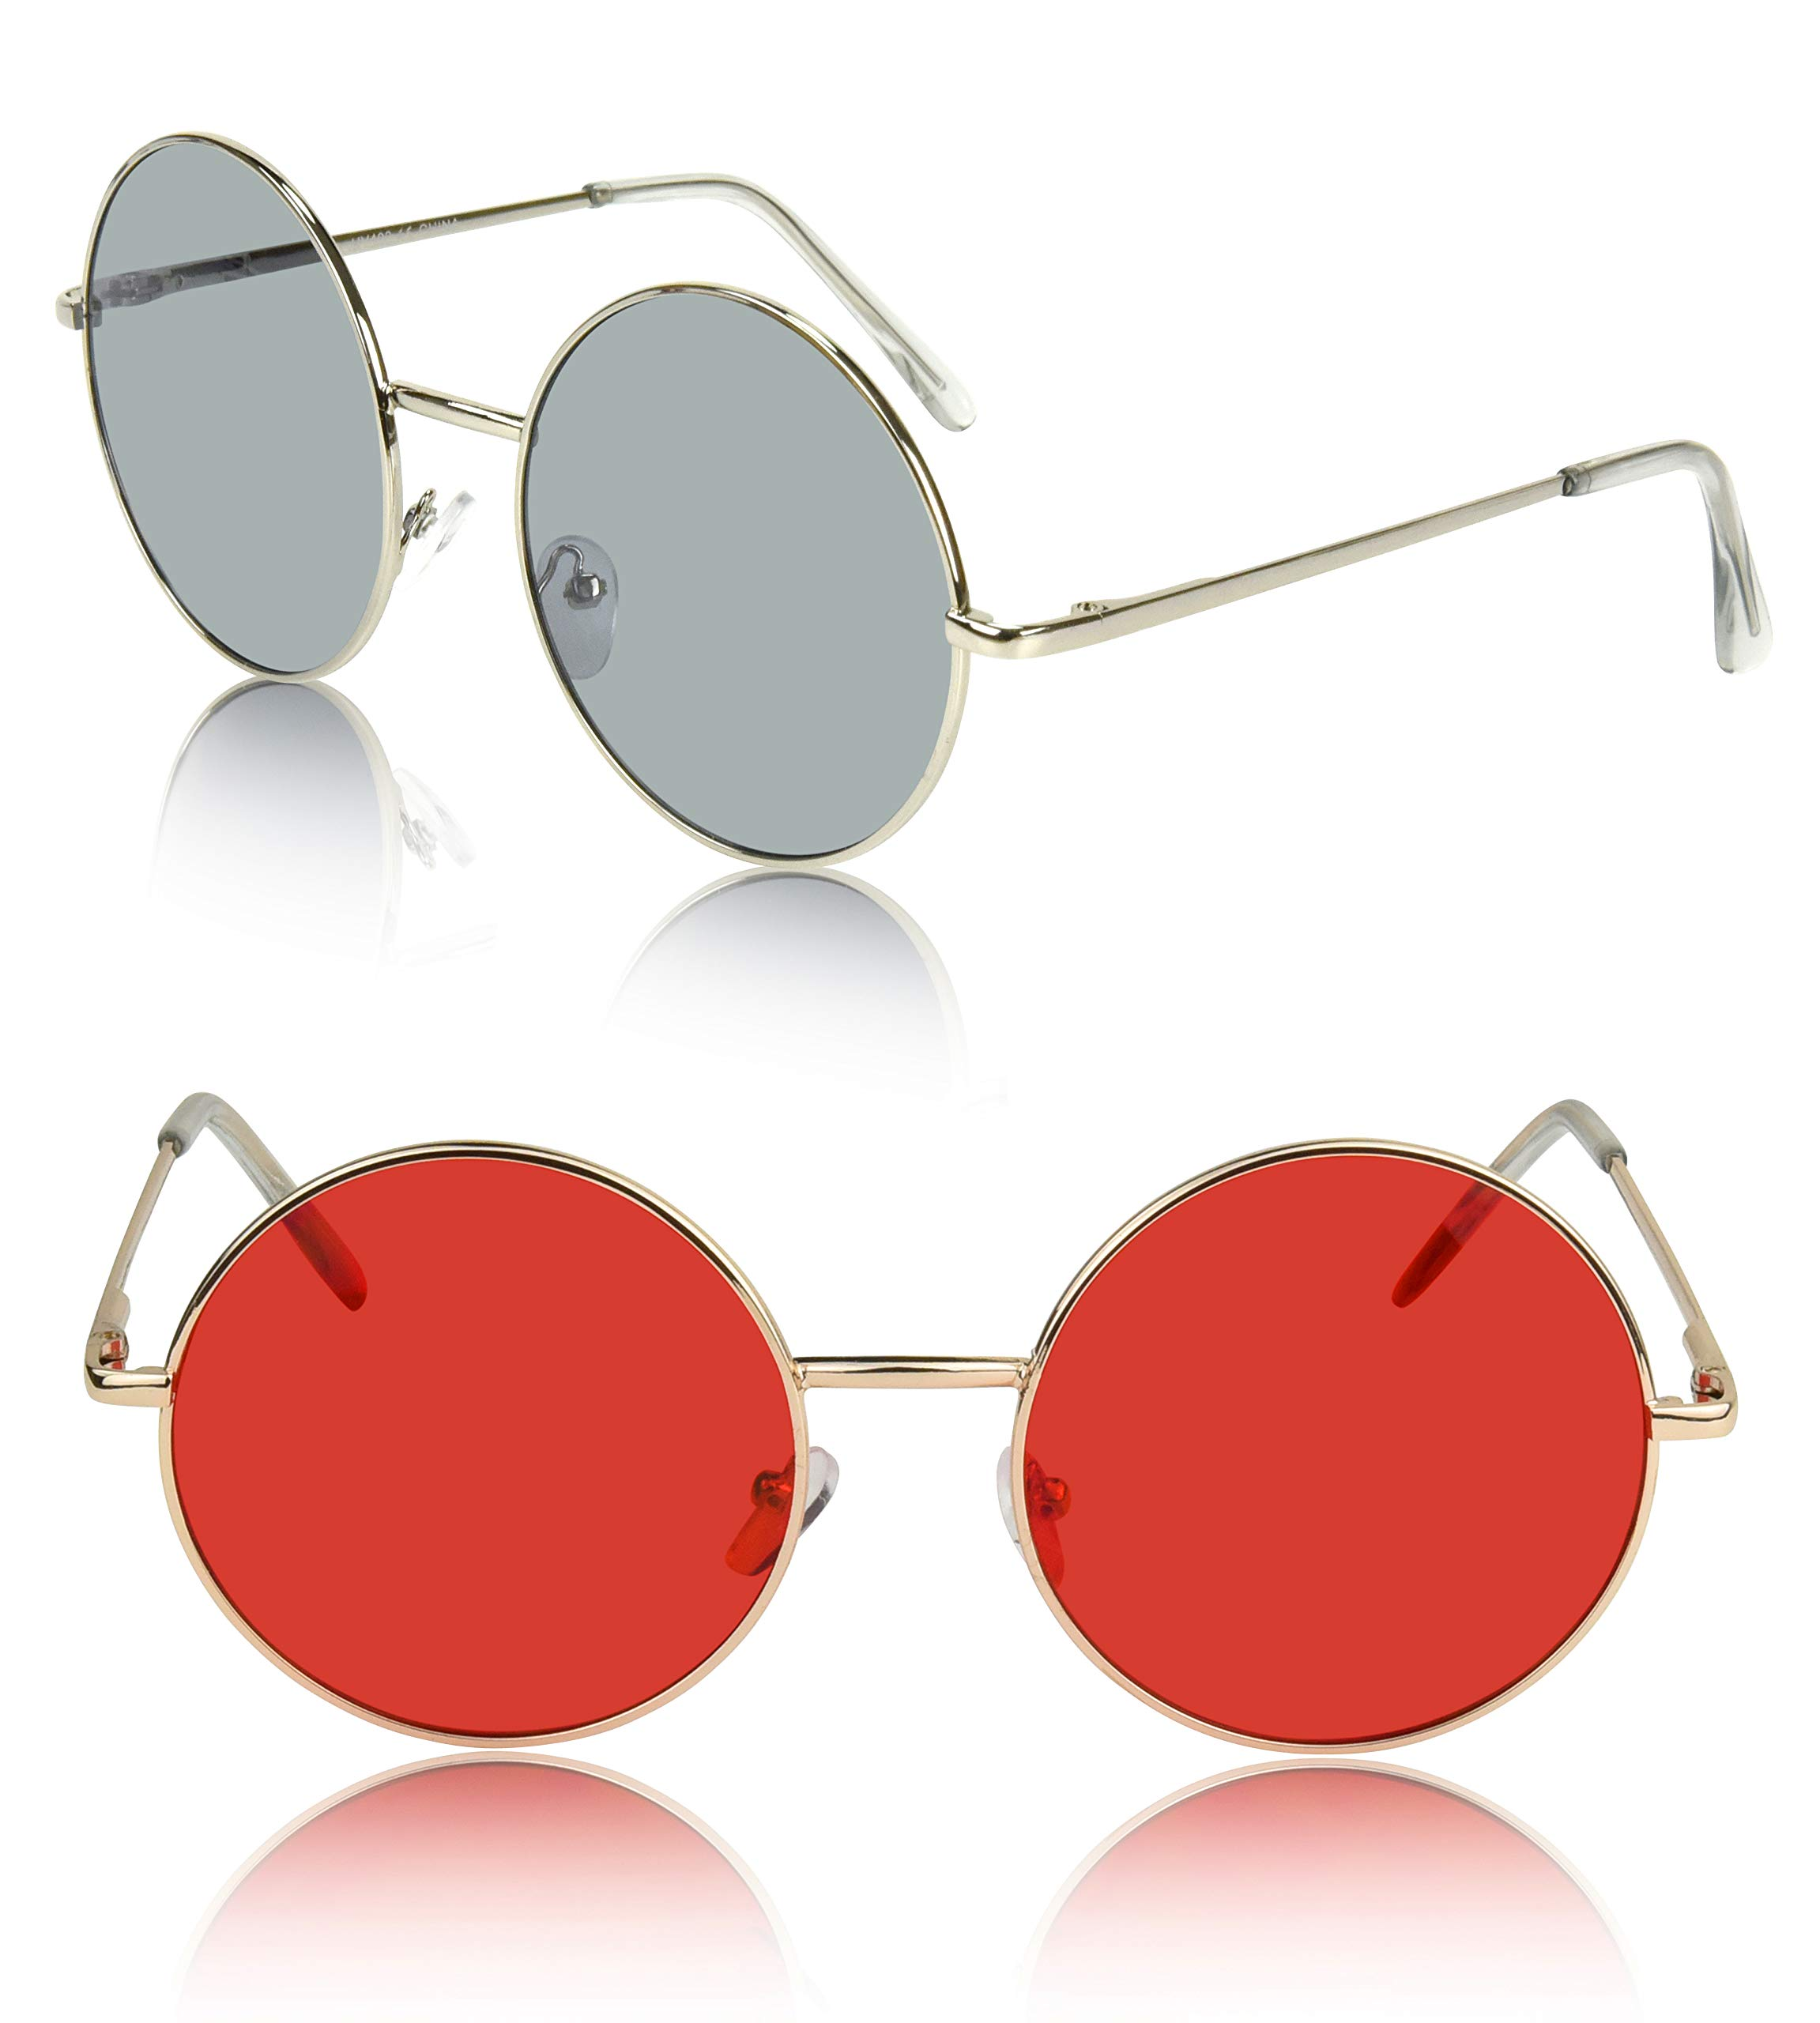 Festival Sunglasses For Women 90's 50's 70's Glasses Clothing Clothes Party Red by SunnyPro